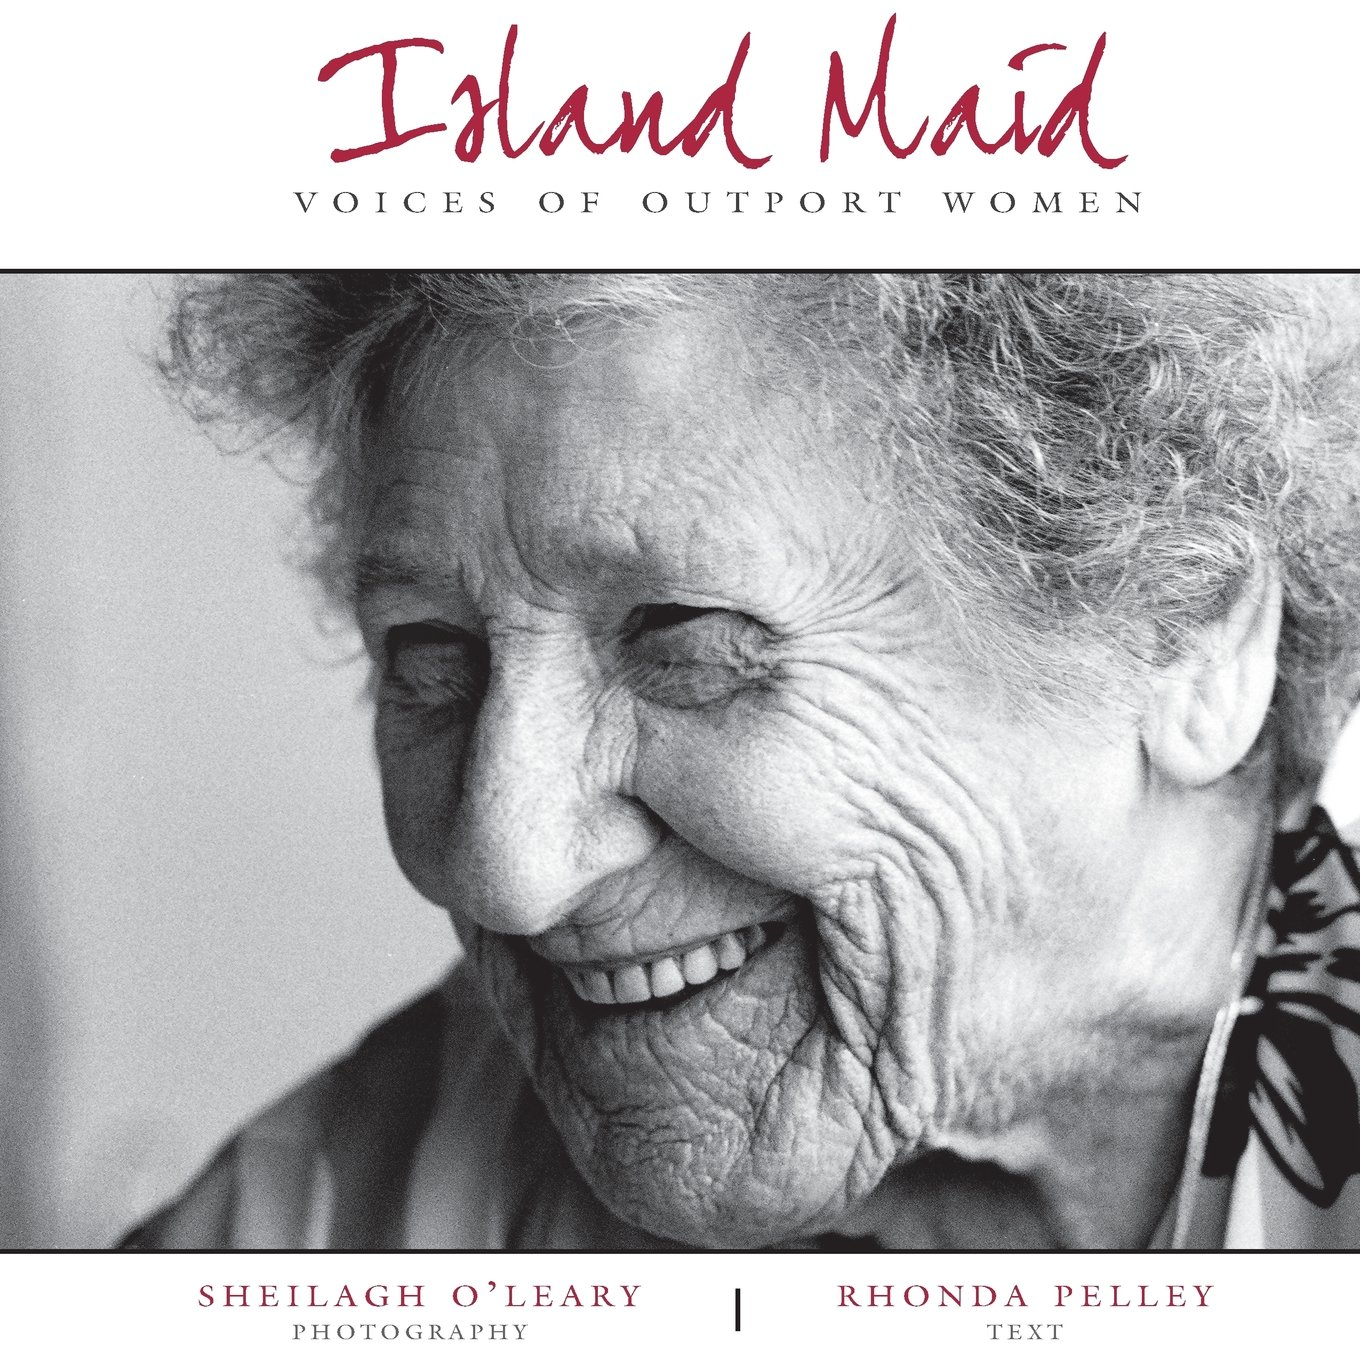 Island Maid: Voices of Outport Women